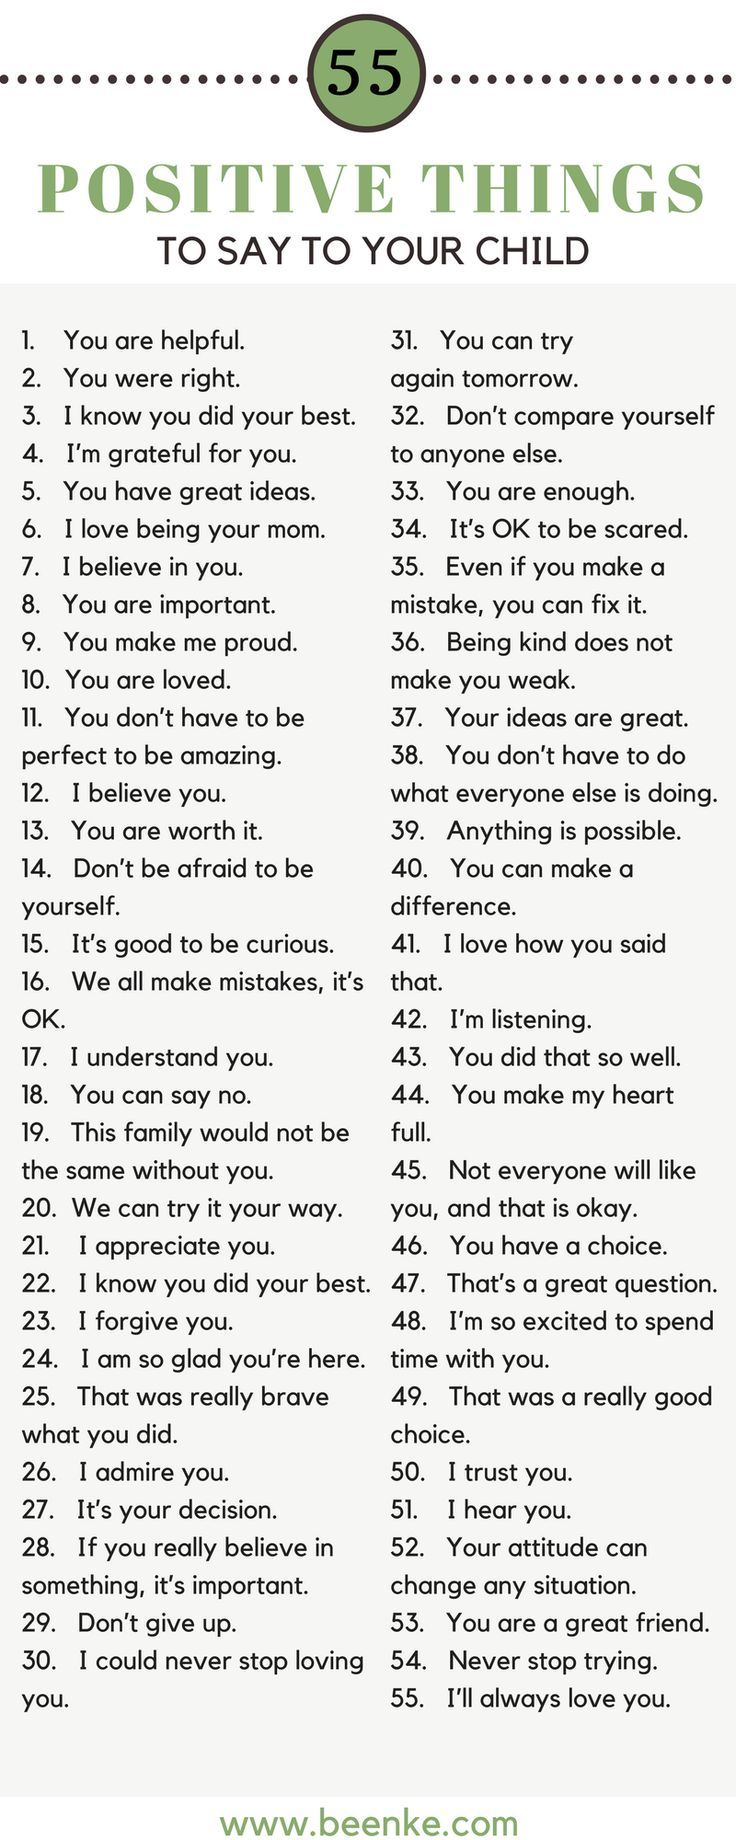 As parents, the way we speak to our children is incredibly important. Words can build kids up, and they can just as easily tear them down. Check out our list of 55 positive things to say to your child on a daily basis. Bond while you build their confidence.#parenting